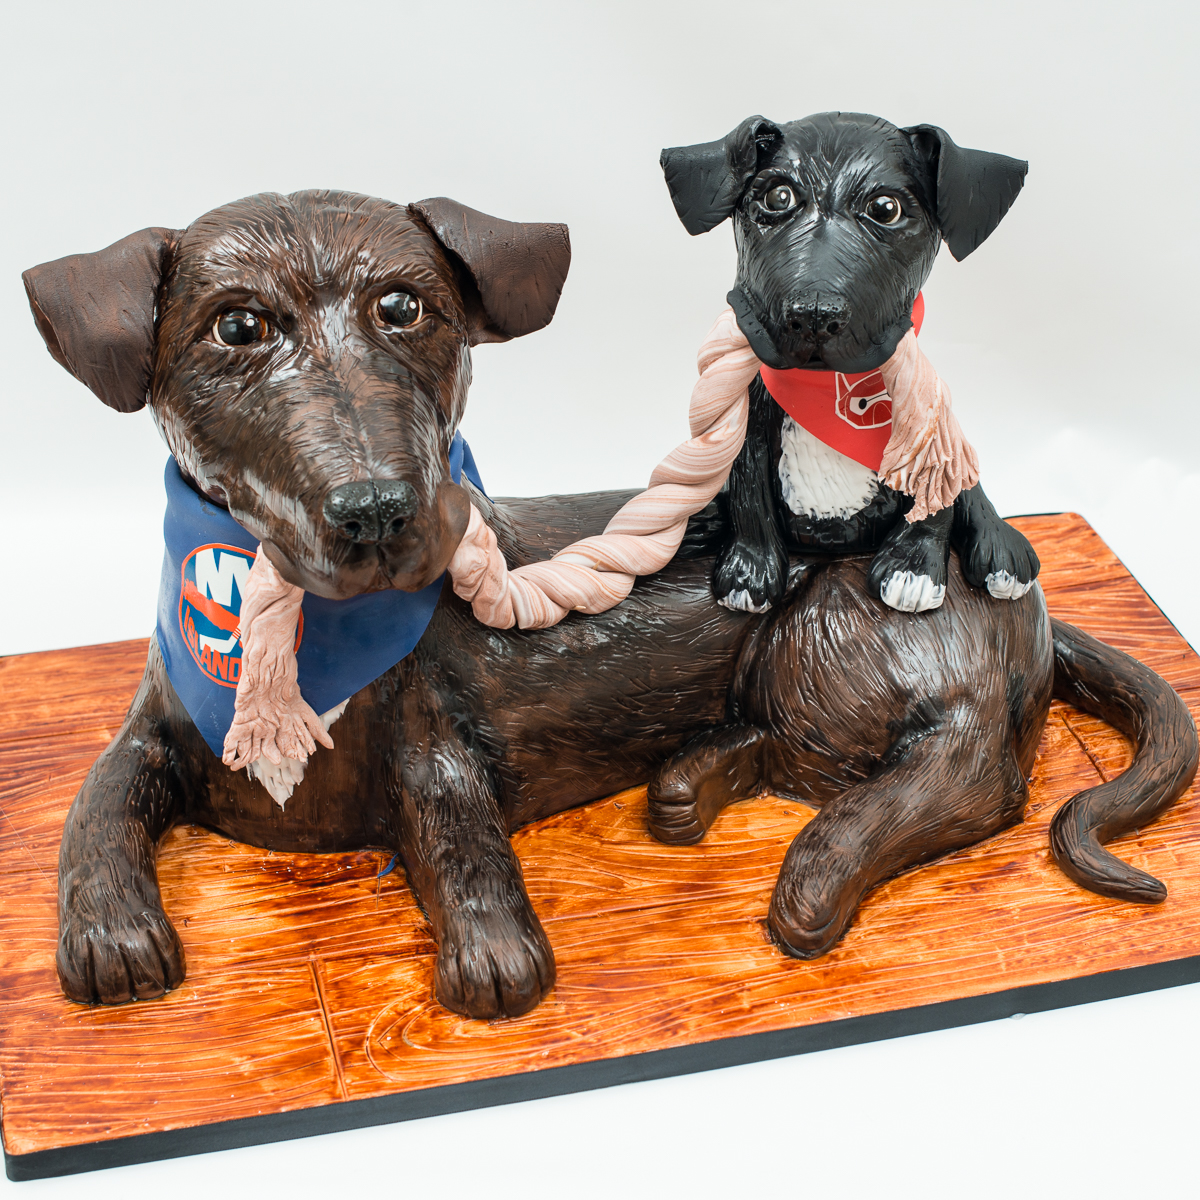 Dog and Puppy Groom's Cake